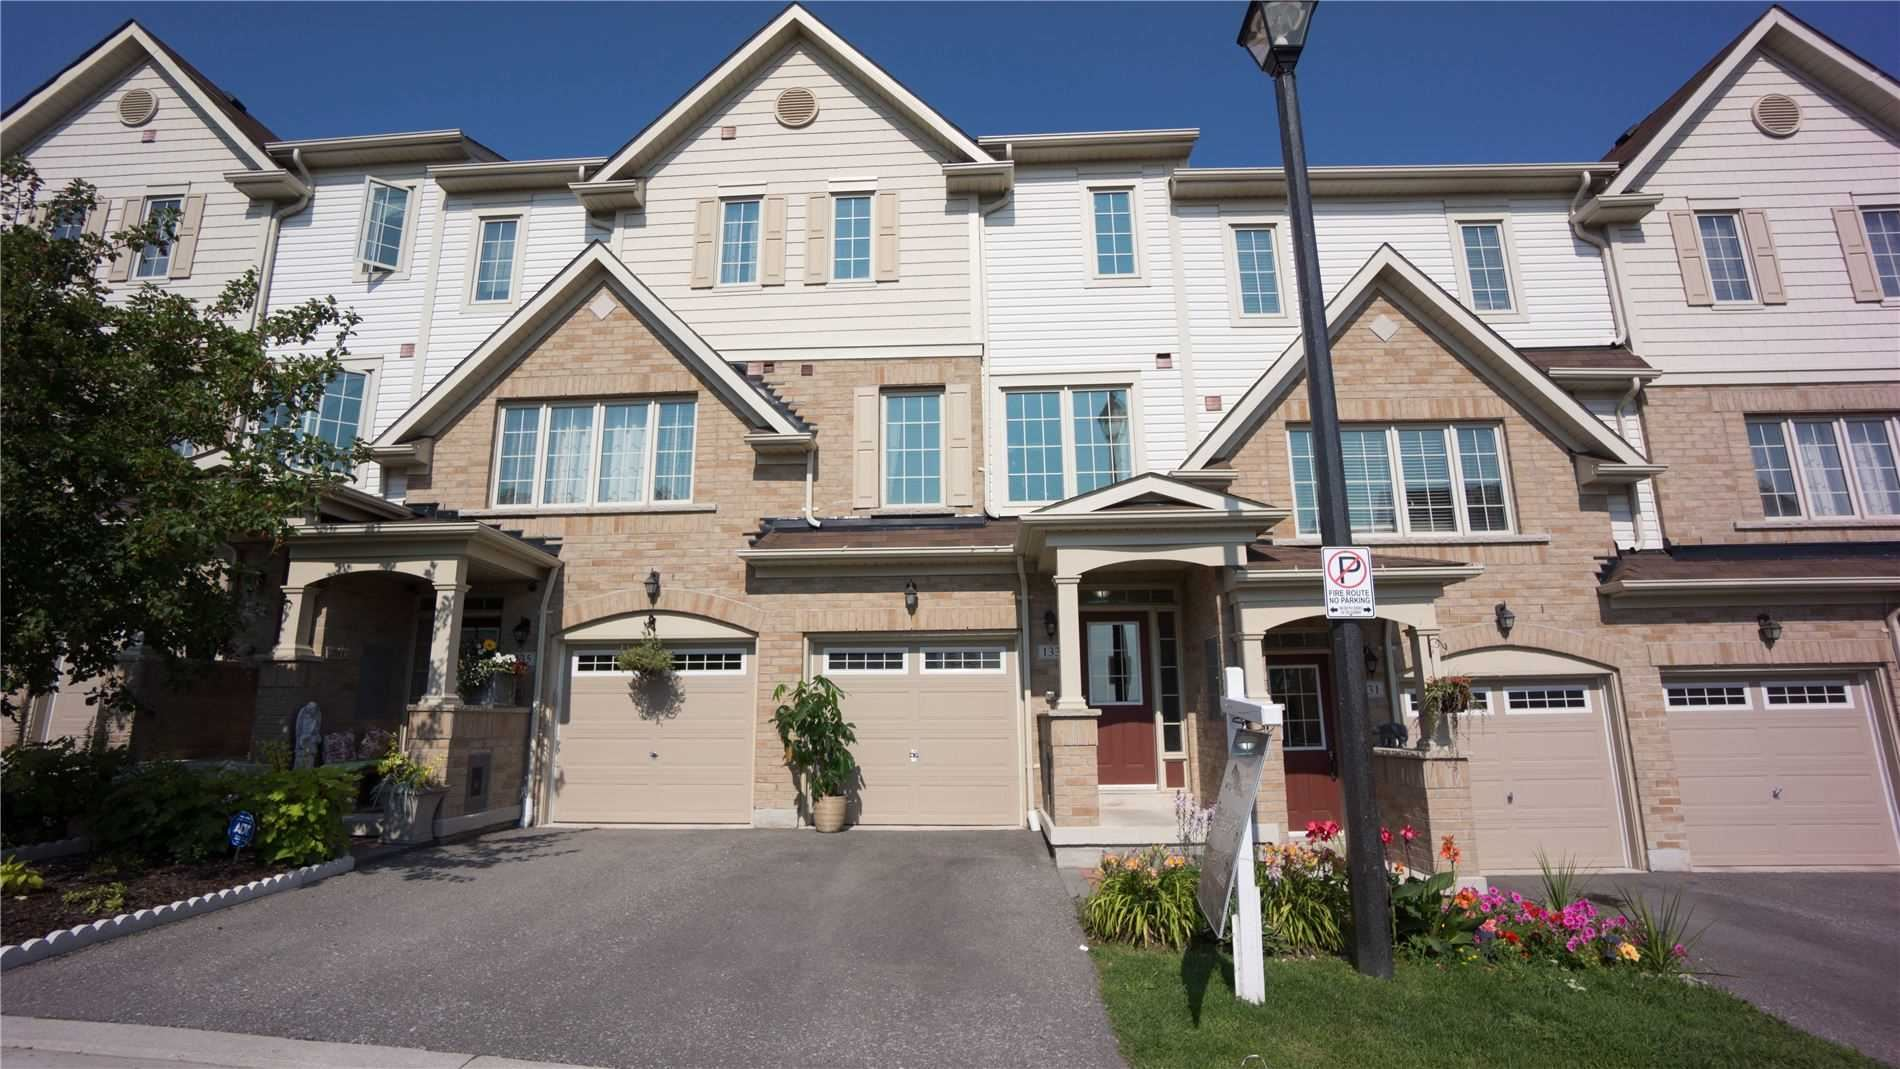 Photo of 133 Magpie Way, Whitby, ON L1N0J7 (MLS # E5323123)